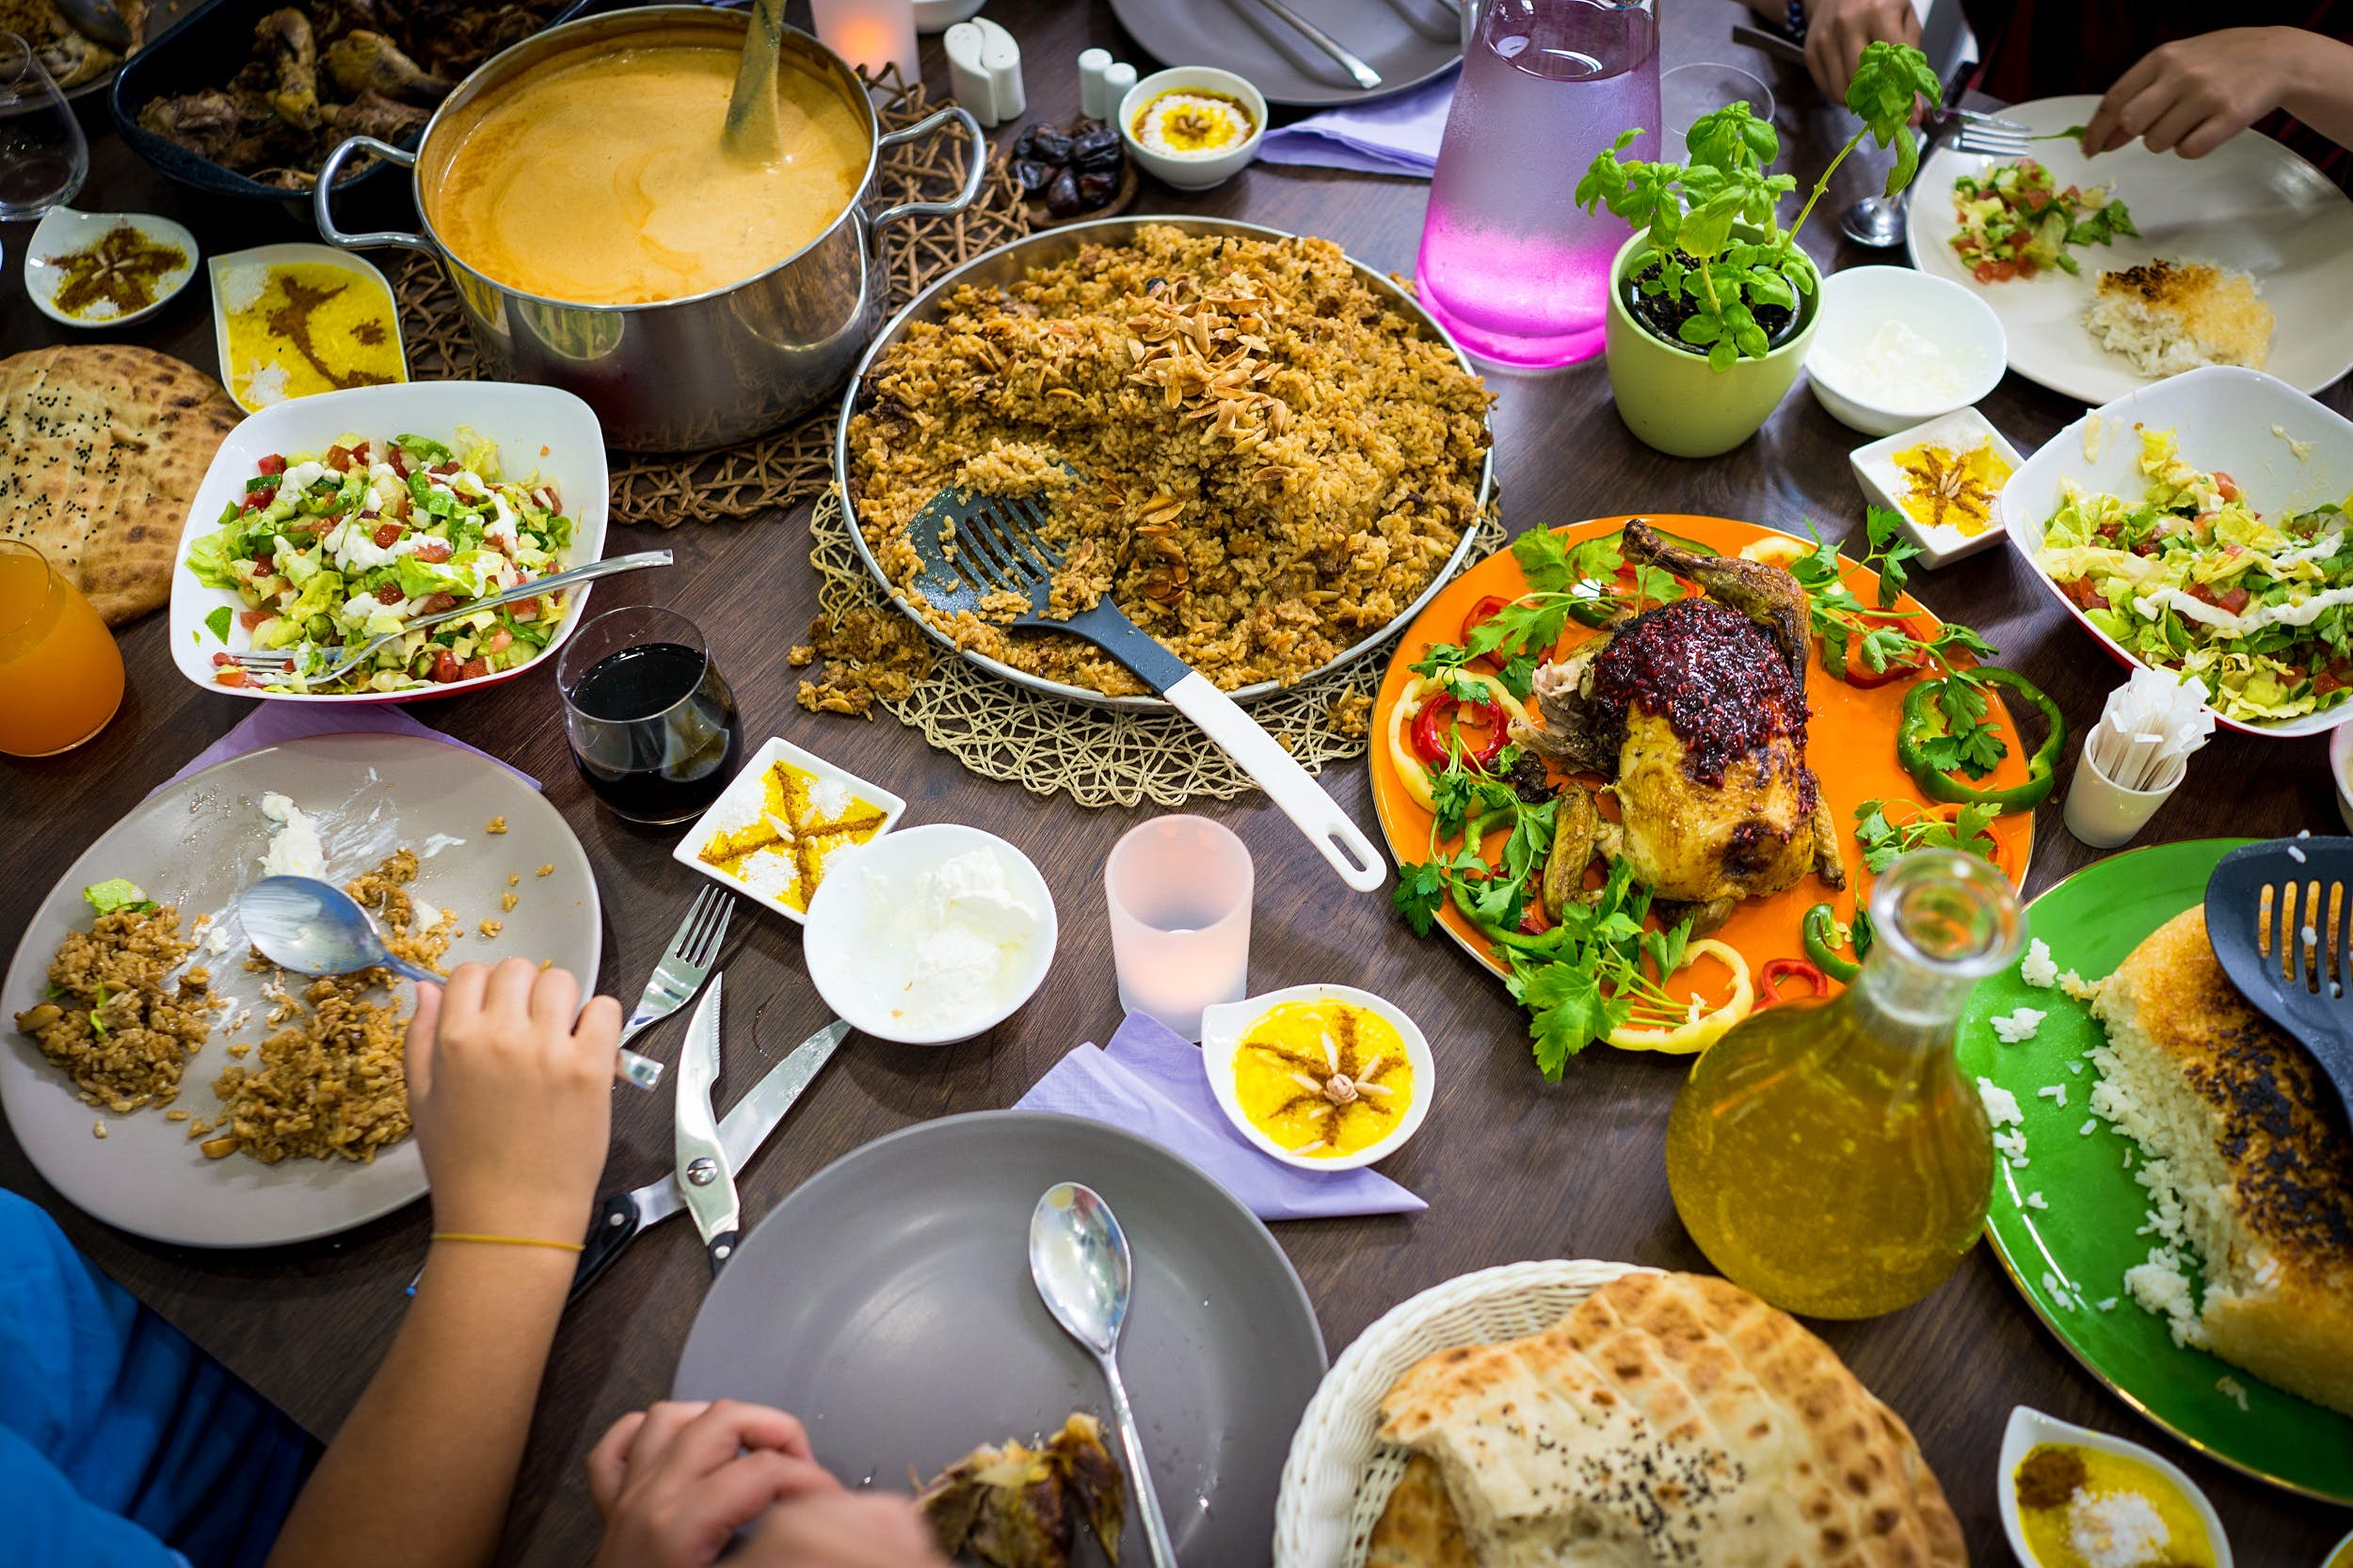 An aerial view of a table covered with different dishes, including rice, a curry dish, roasted chicken and a salad